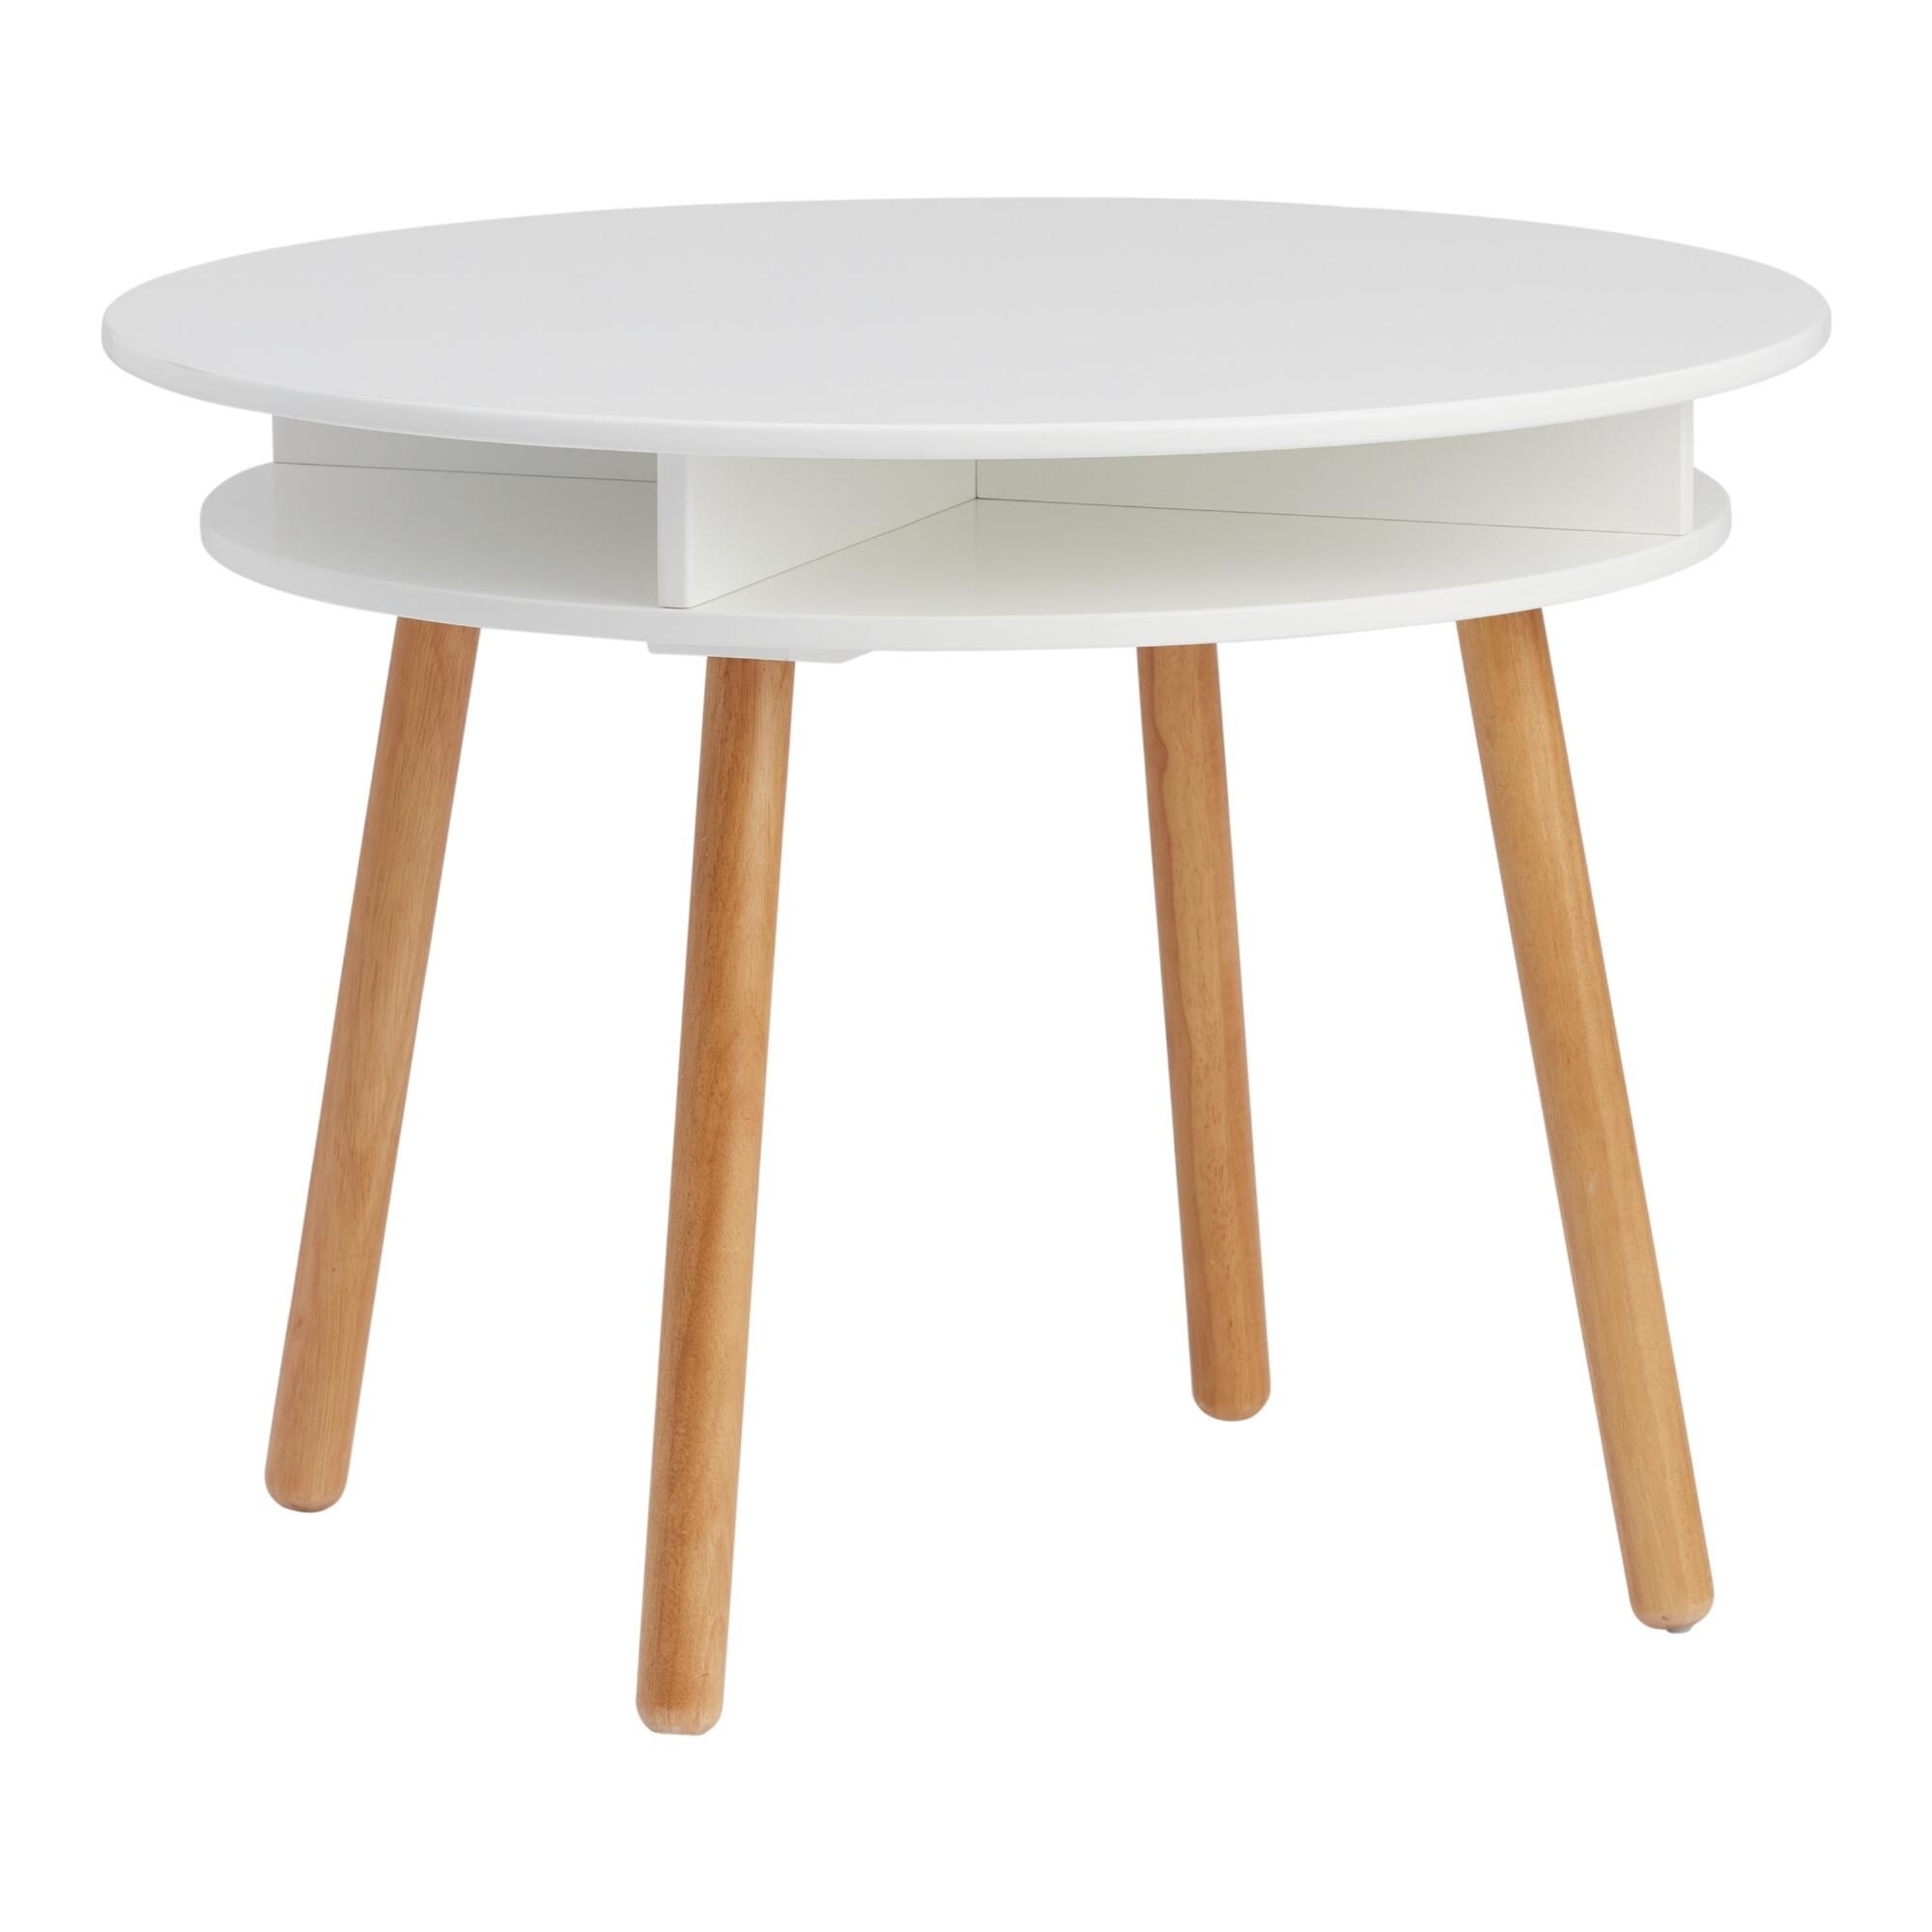 The white table with natural wood finish legs